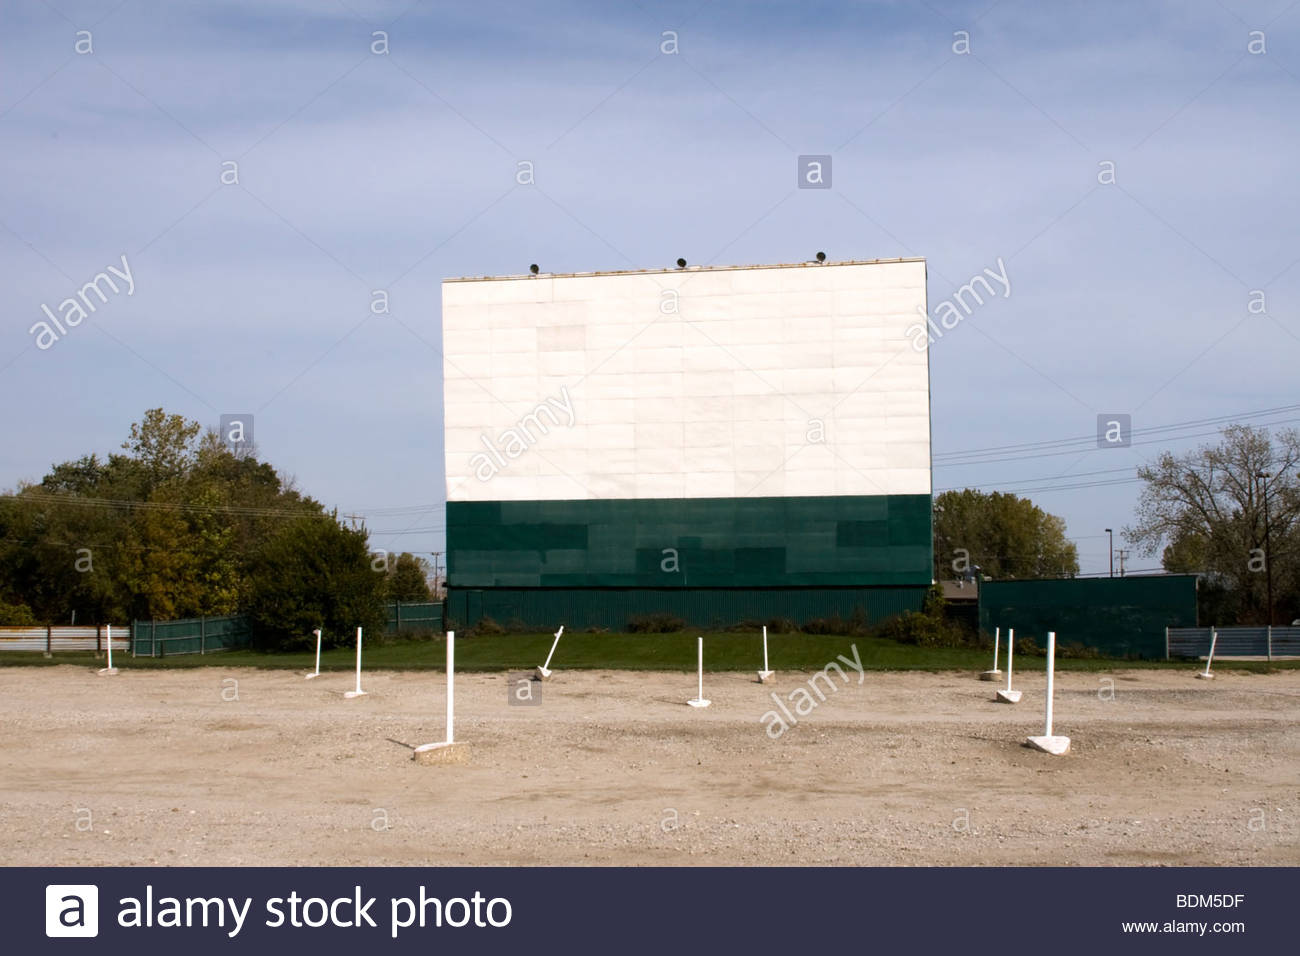 white screen billboard outdoor theater stock photo royalty